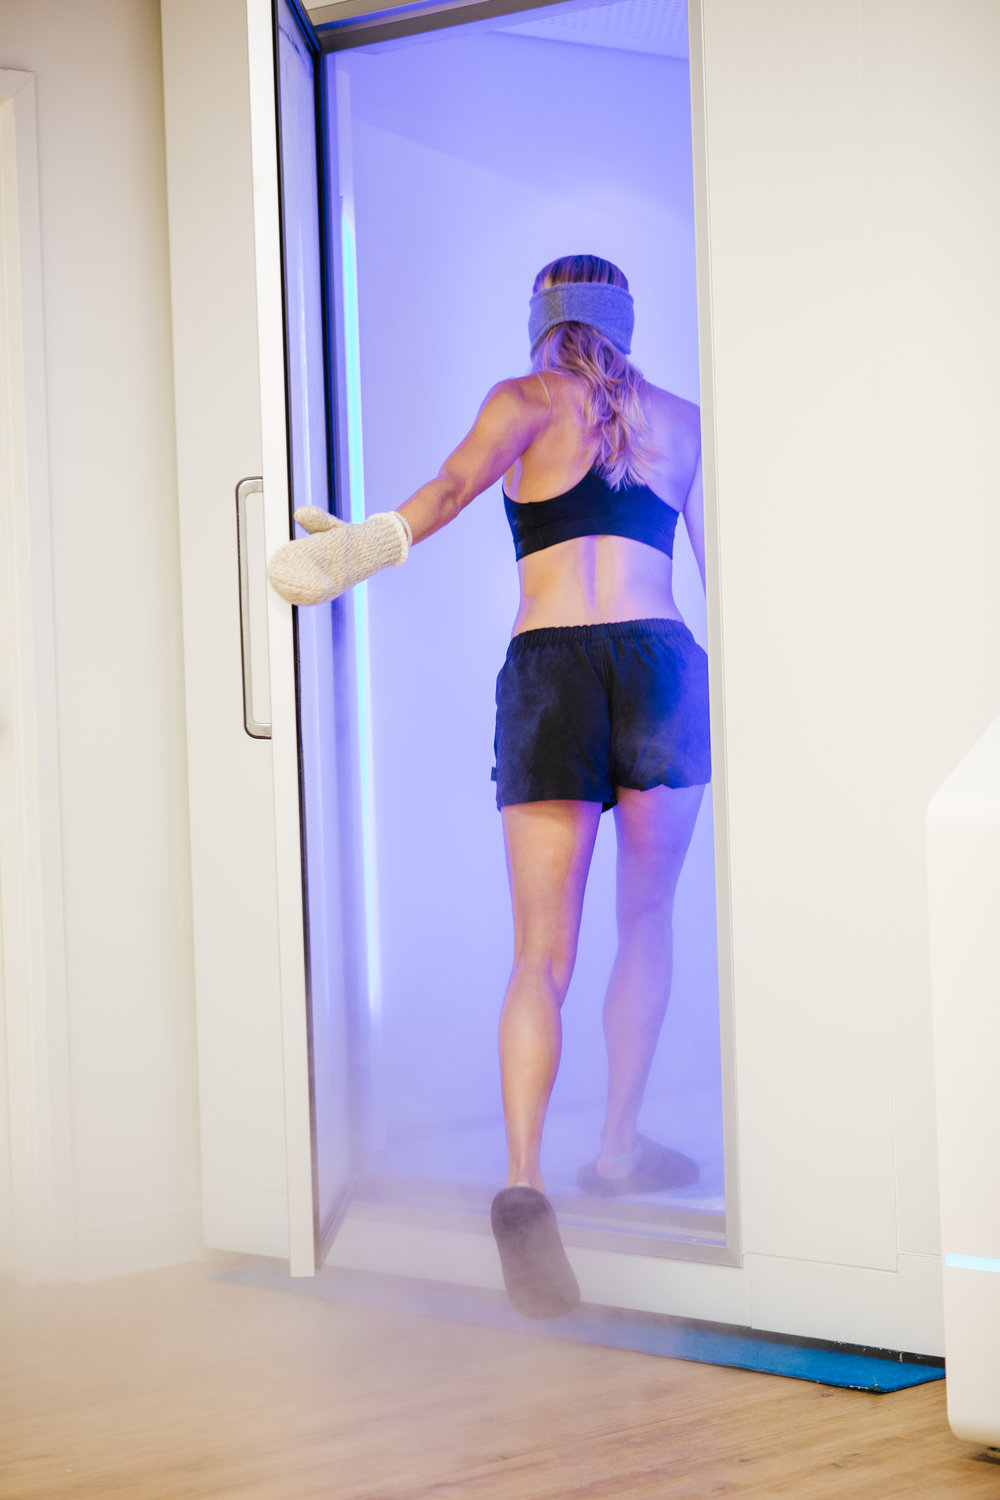 Cryotherapy chamber at norspring chattanooga